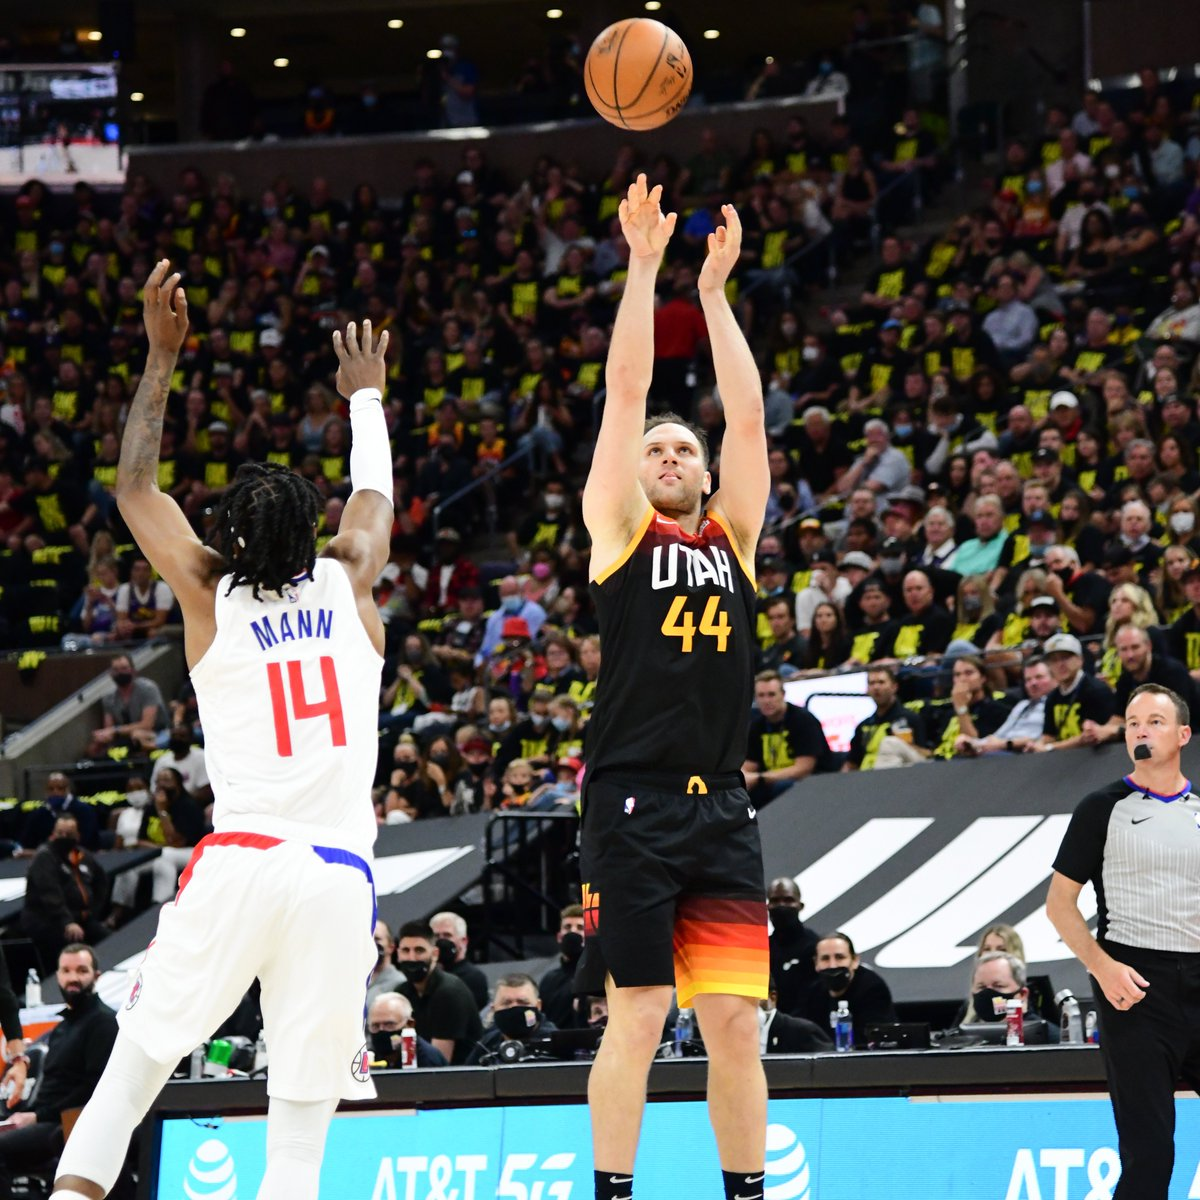 The @utahjazz 17 threes made in the 1st half tonight are the 2nd most 3PM in any half in #NBAPlayoffs history. Cleveland made 18 triples in the 1st half on 05/04/2016. https://t.co/oXyj9mUiUq